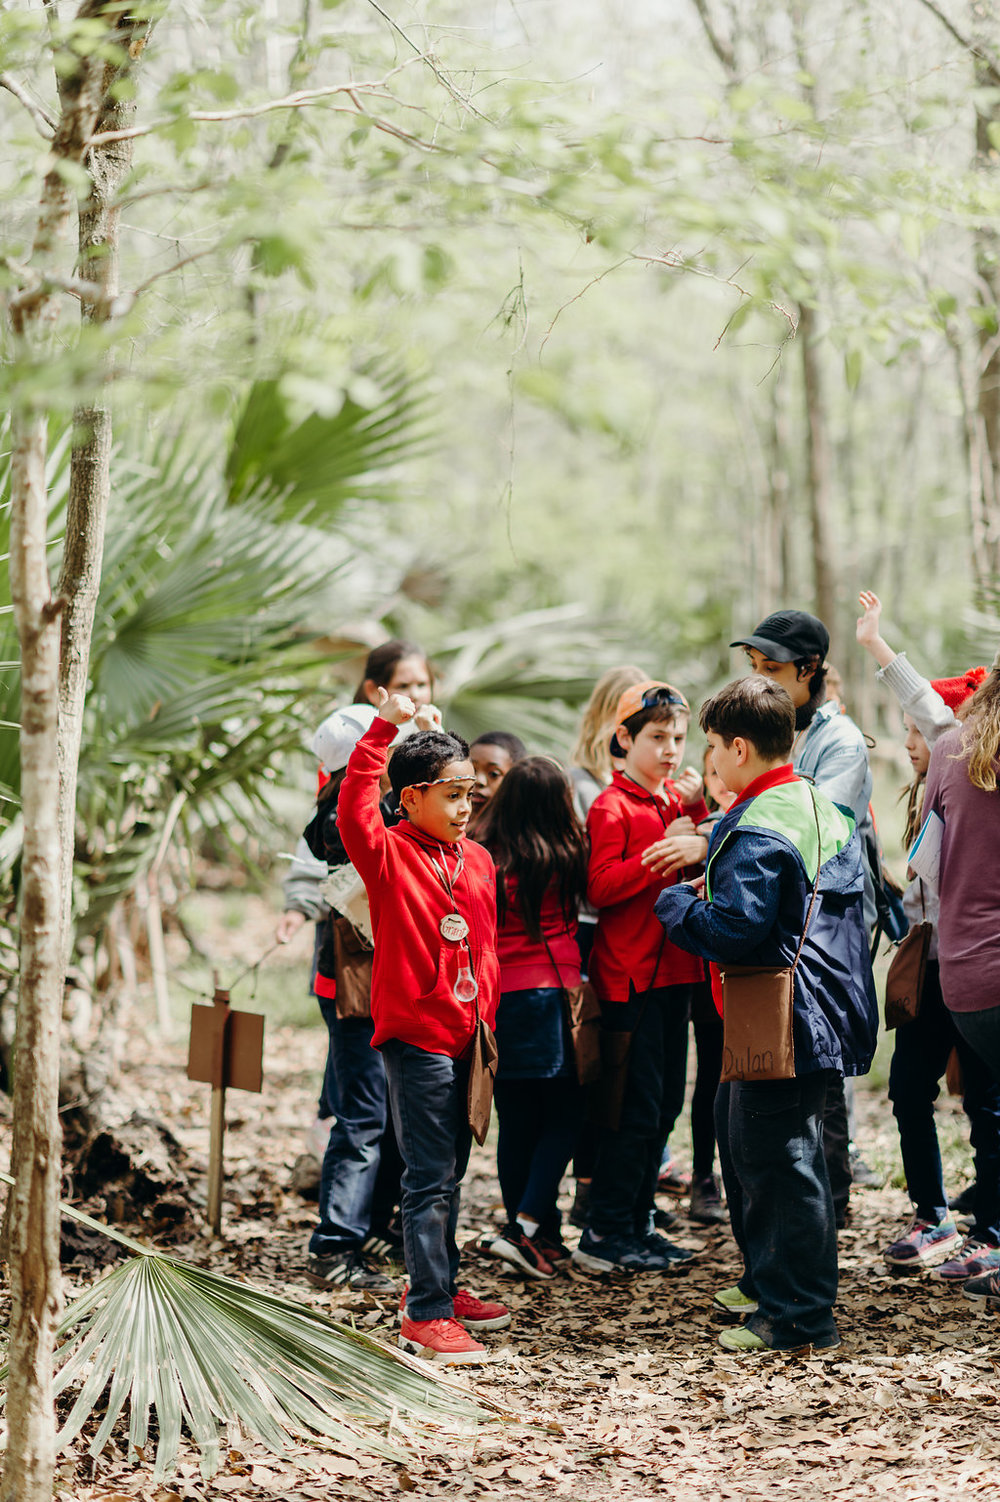 What makes T.R.E.E. special? - While providing academic challenges, we instill a caring attitude and provide fundamental knowledge of how the systems on the Earth work. Our programs also immerse children in a safe and natural environment where they are nurtured and can develop a deep appreciation for the precious plants and animals that live on the Earth through thought provoking experiential activities. The culmination of these components creates the impetus for children to make wiser decisions on how to preserve the wonderful diversity of our natural world and to make choices to live more lightly on our magnificent planet.